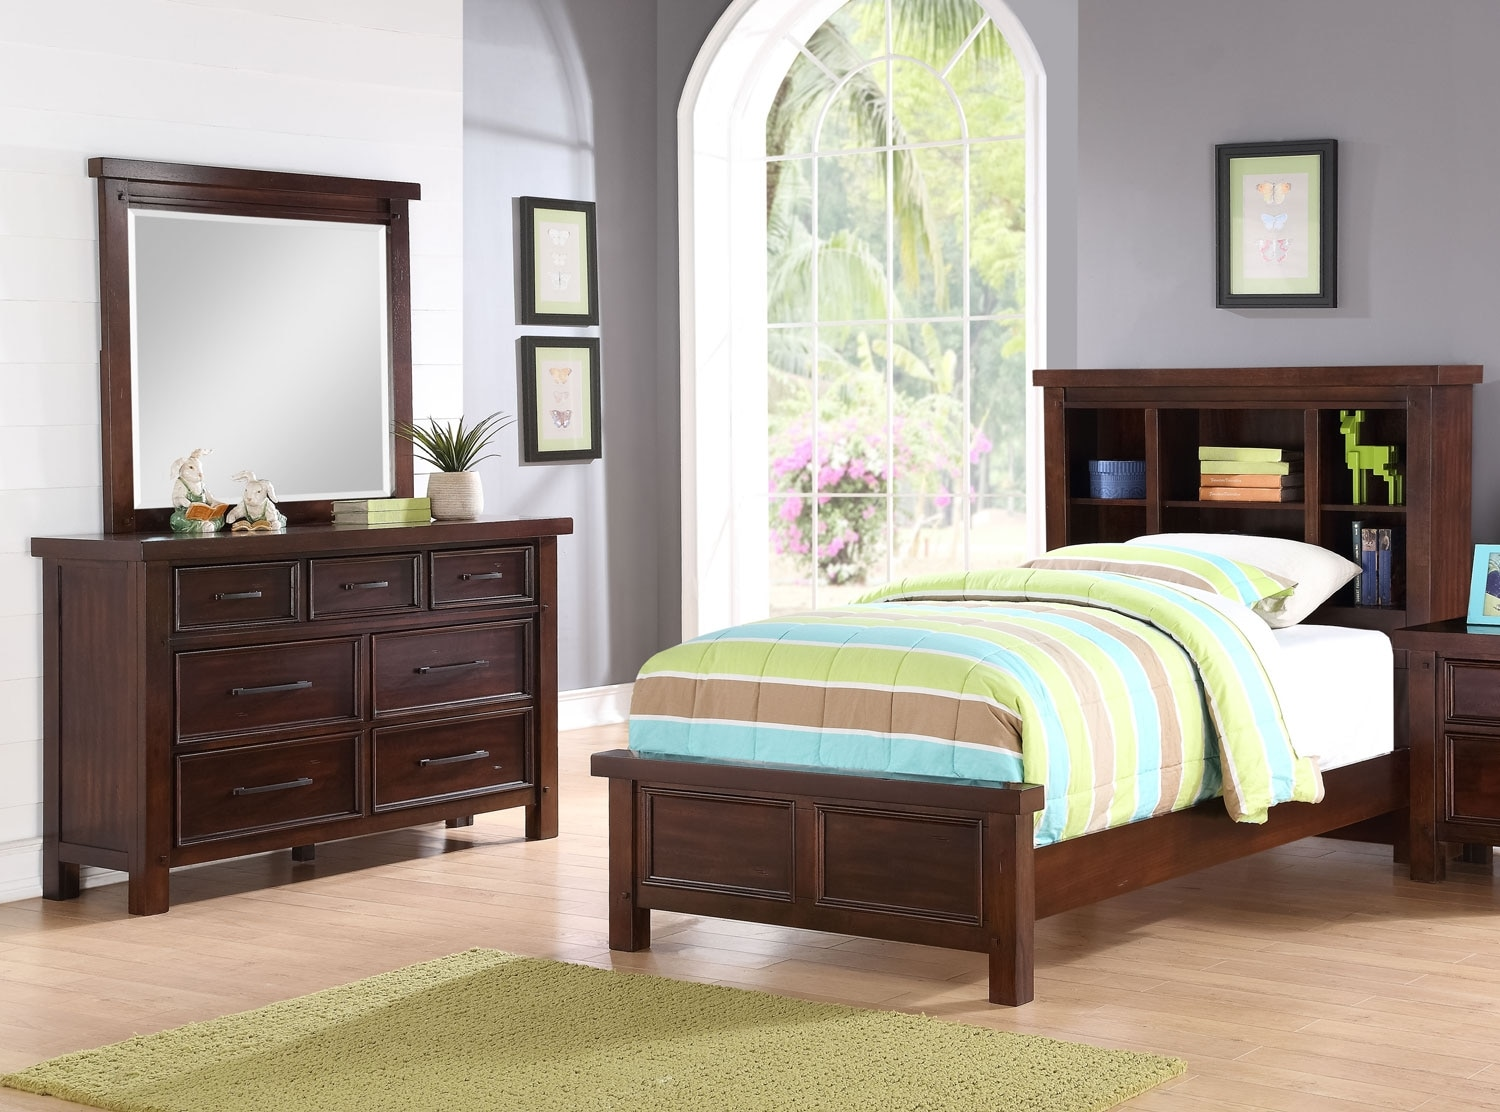 Sonoma Youth 5-Piece Bookcase Bedroom Package – Full